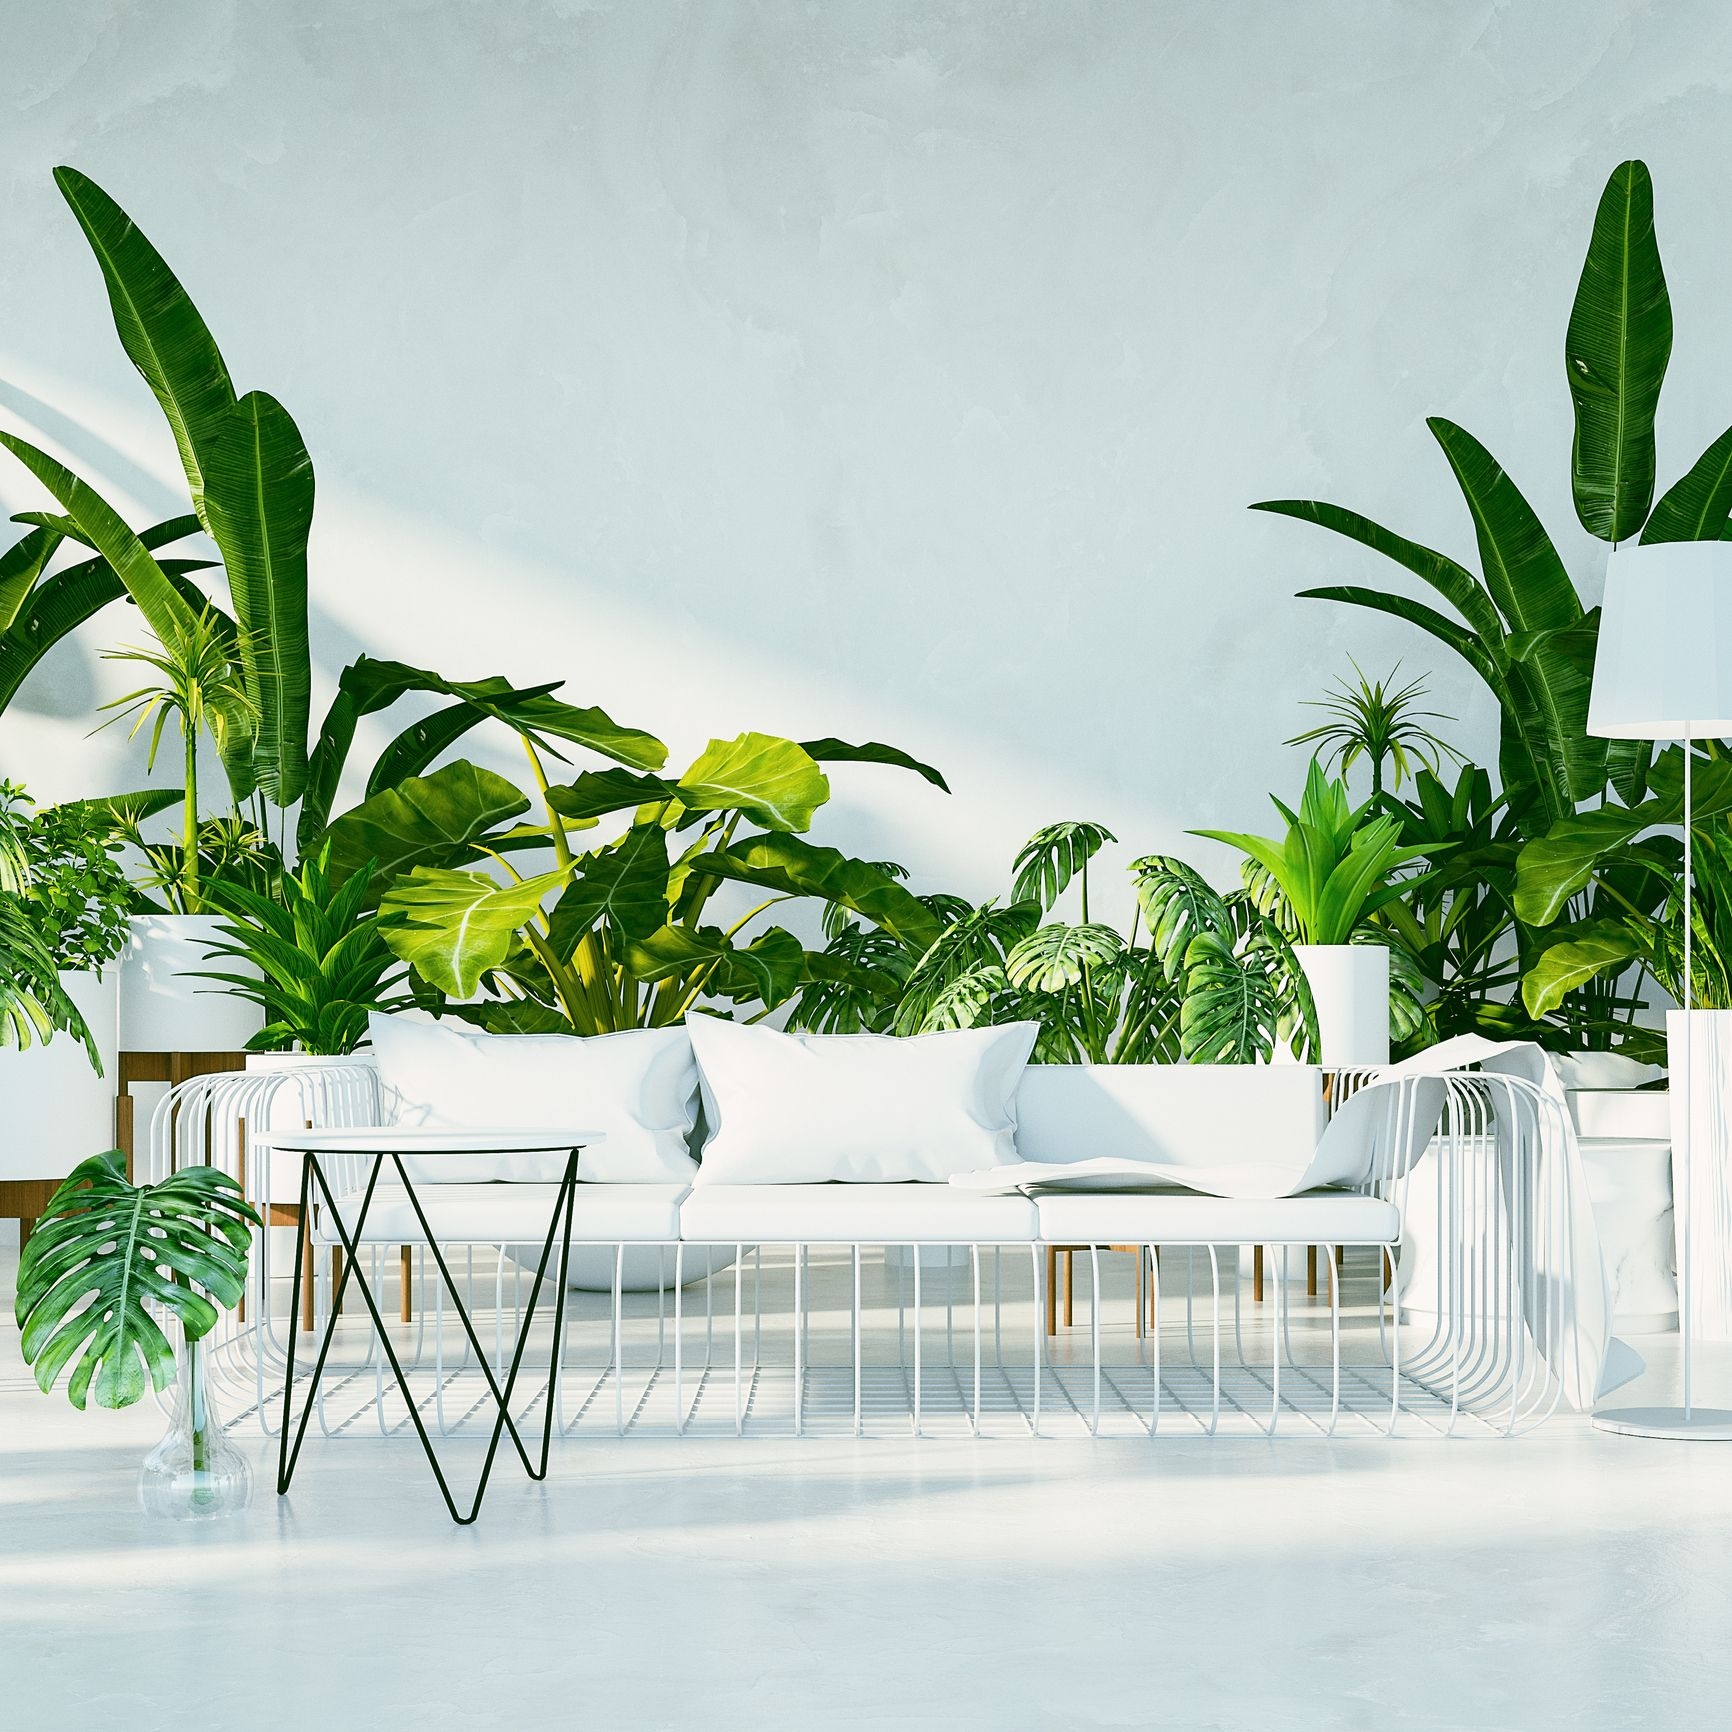 Go Green with the Interiors